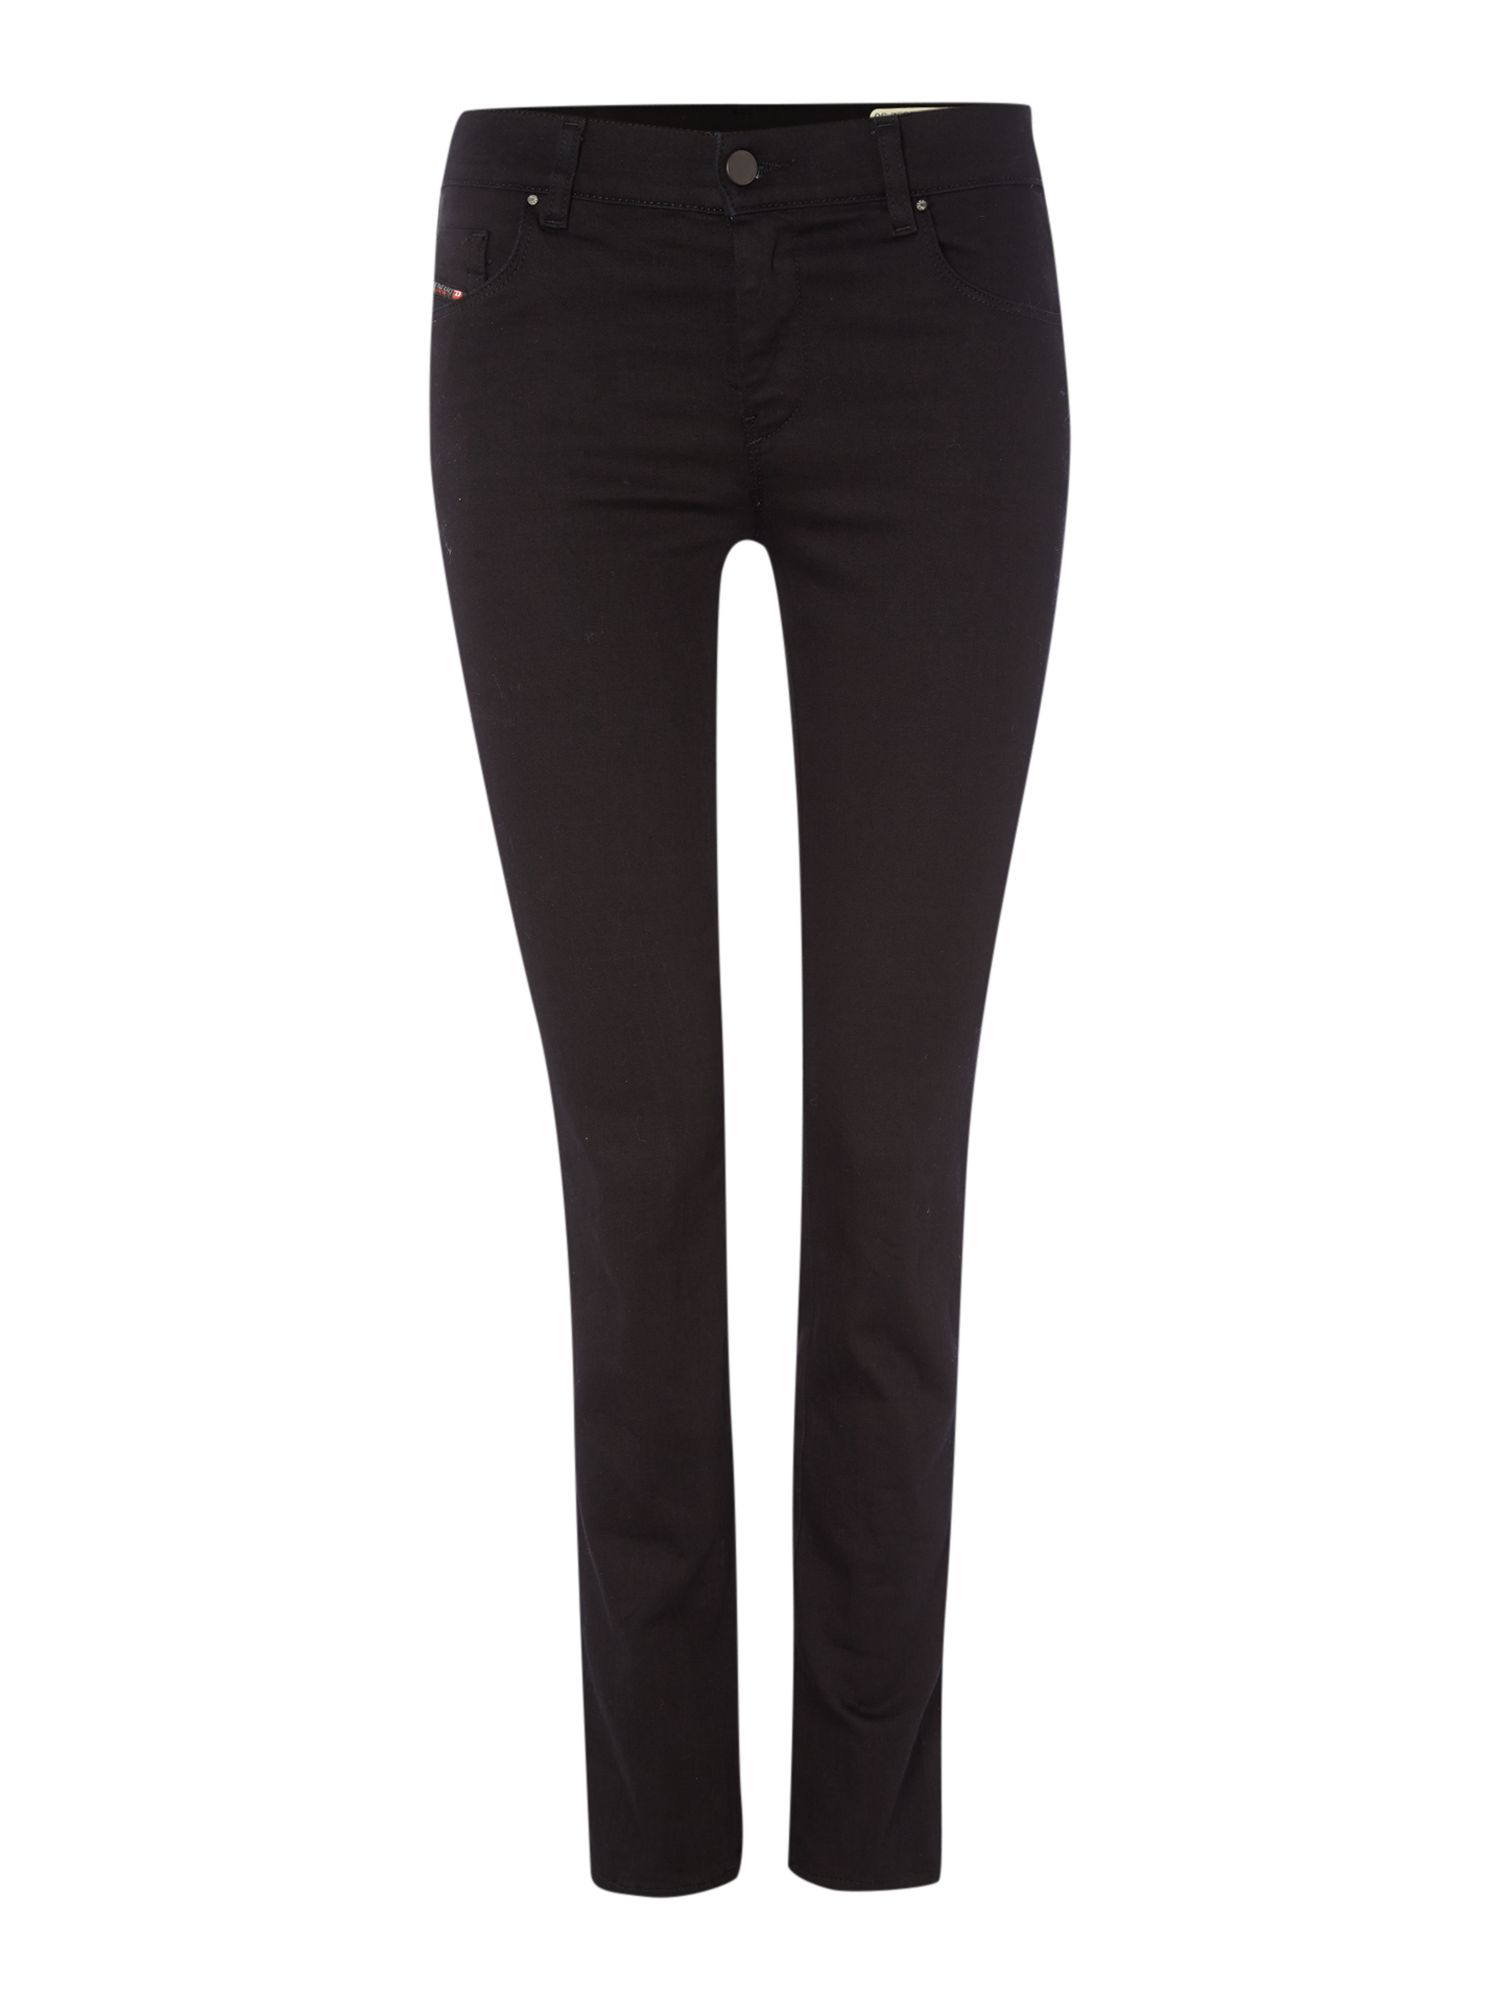 Sandy 0800r Reg Straight Jeans Leg 30, Black